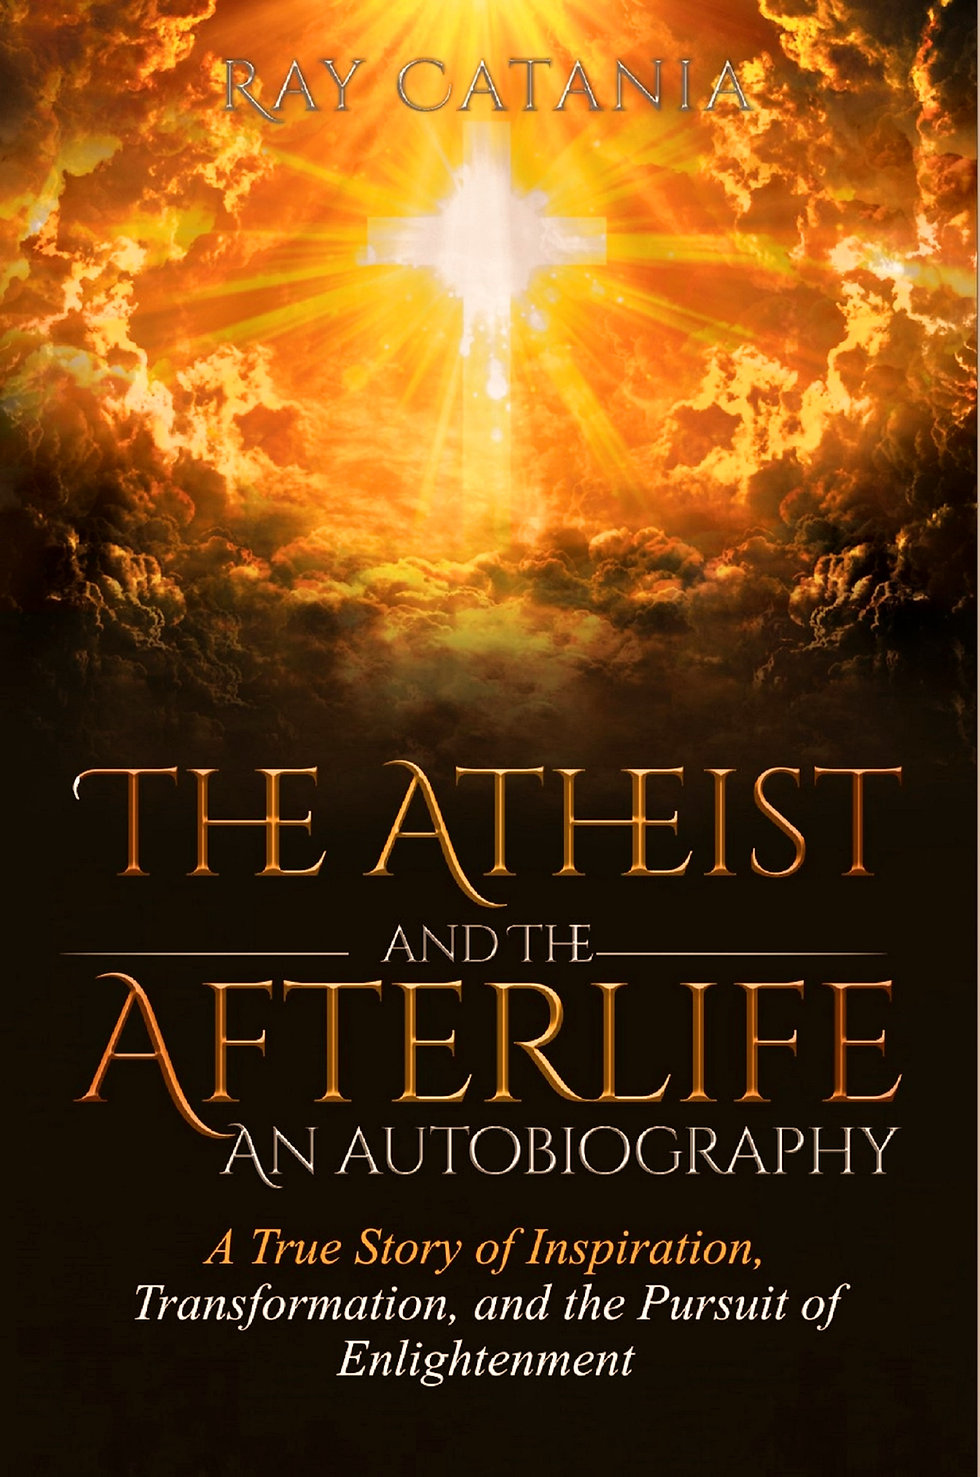 The Atheist and The Afterlife